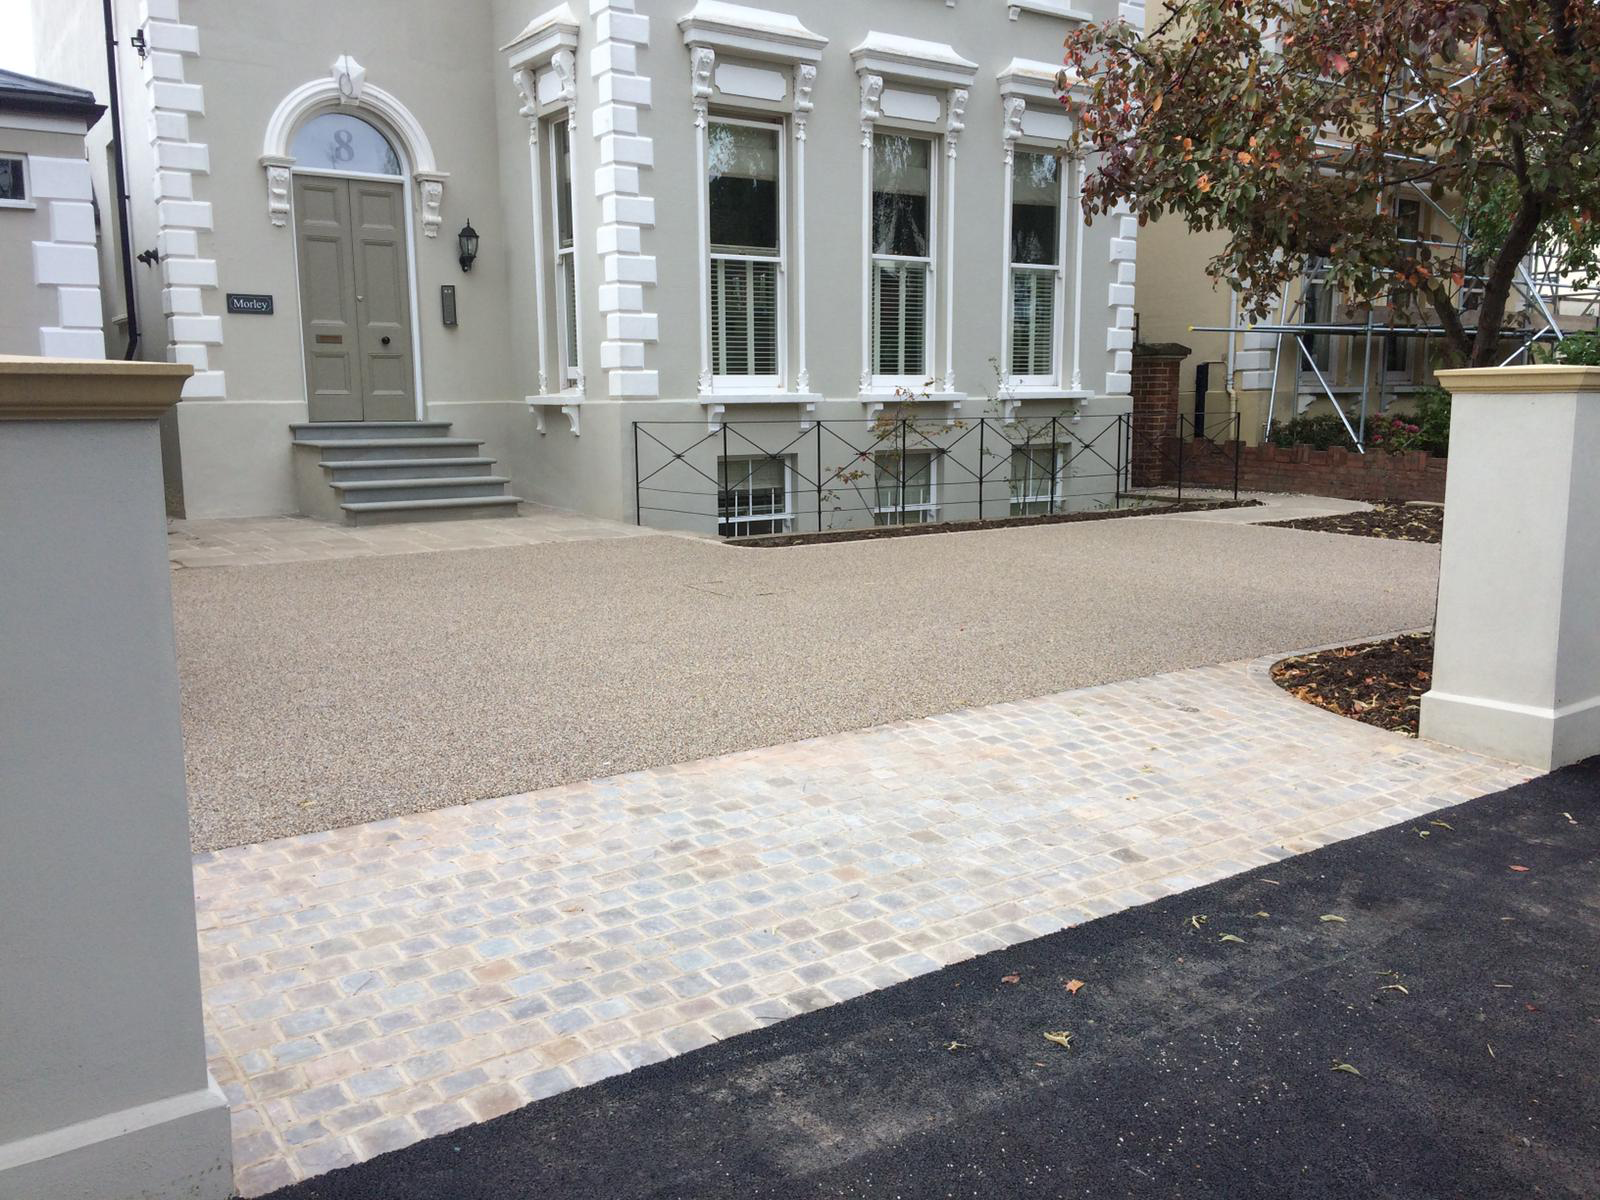 Period property resin bound driveway with apron by Martyn Powell Landscapes